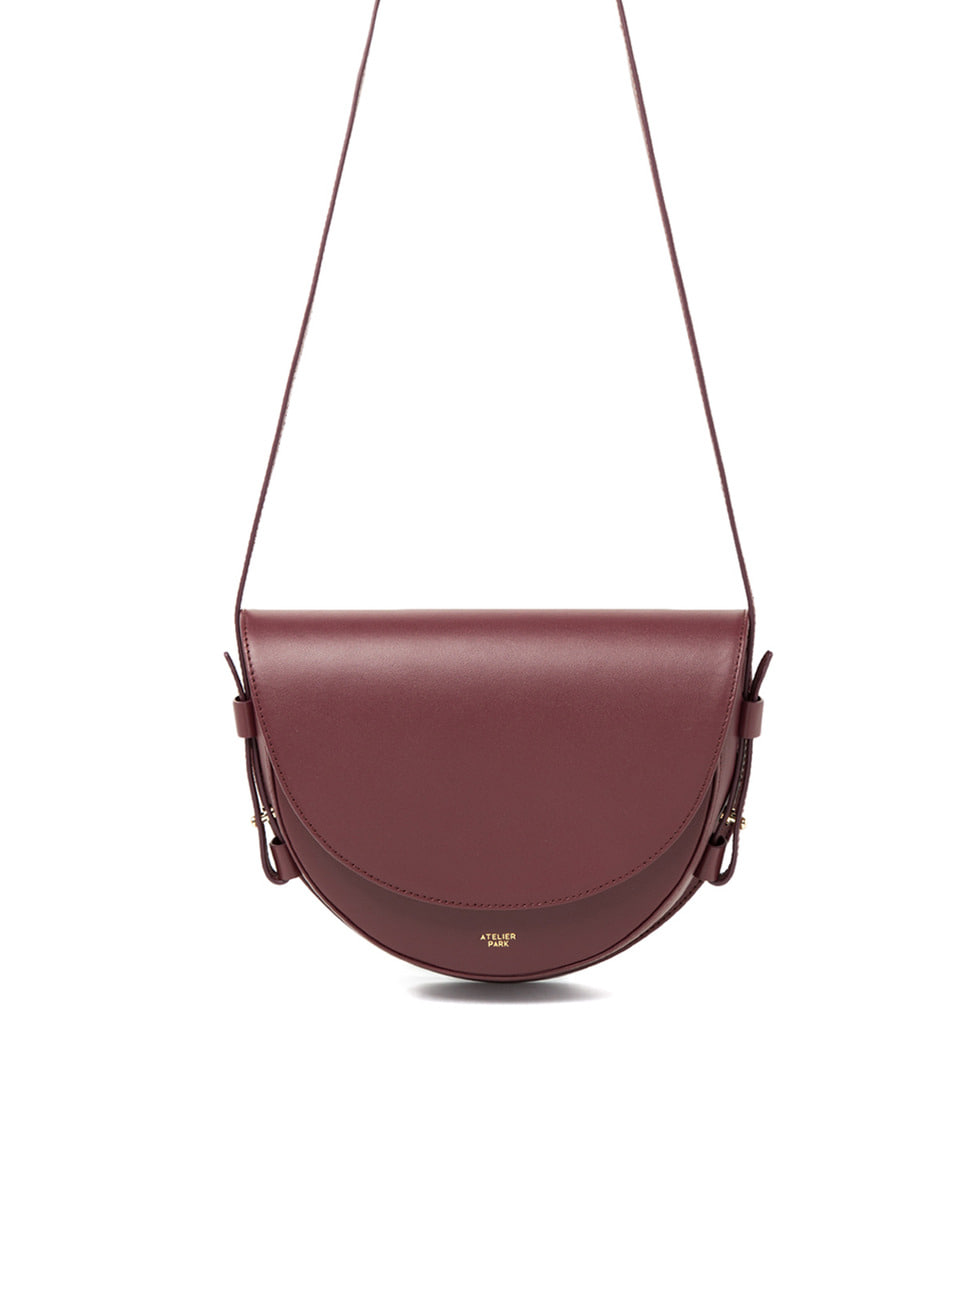 COW LEATHER LAMI BAG - BURGUNDY